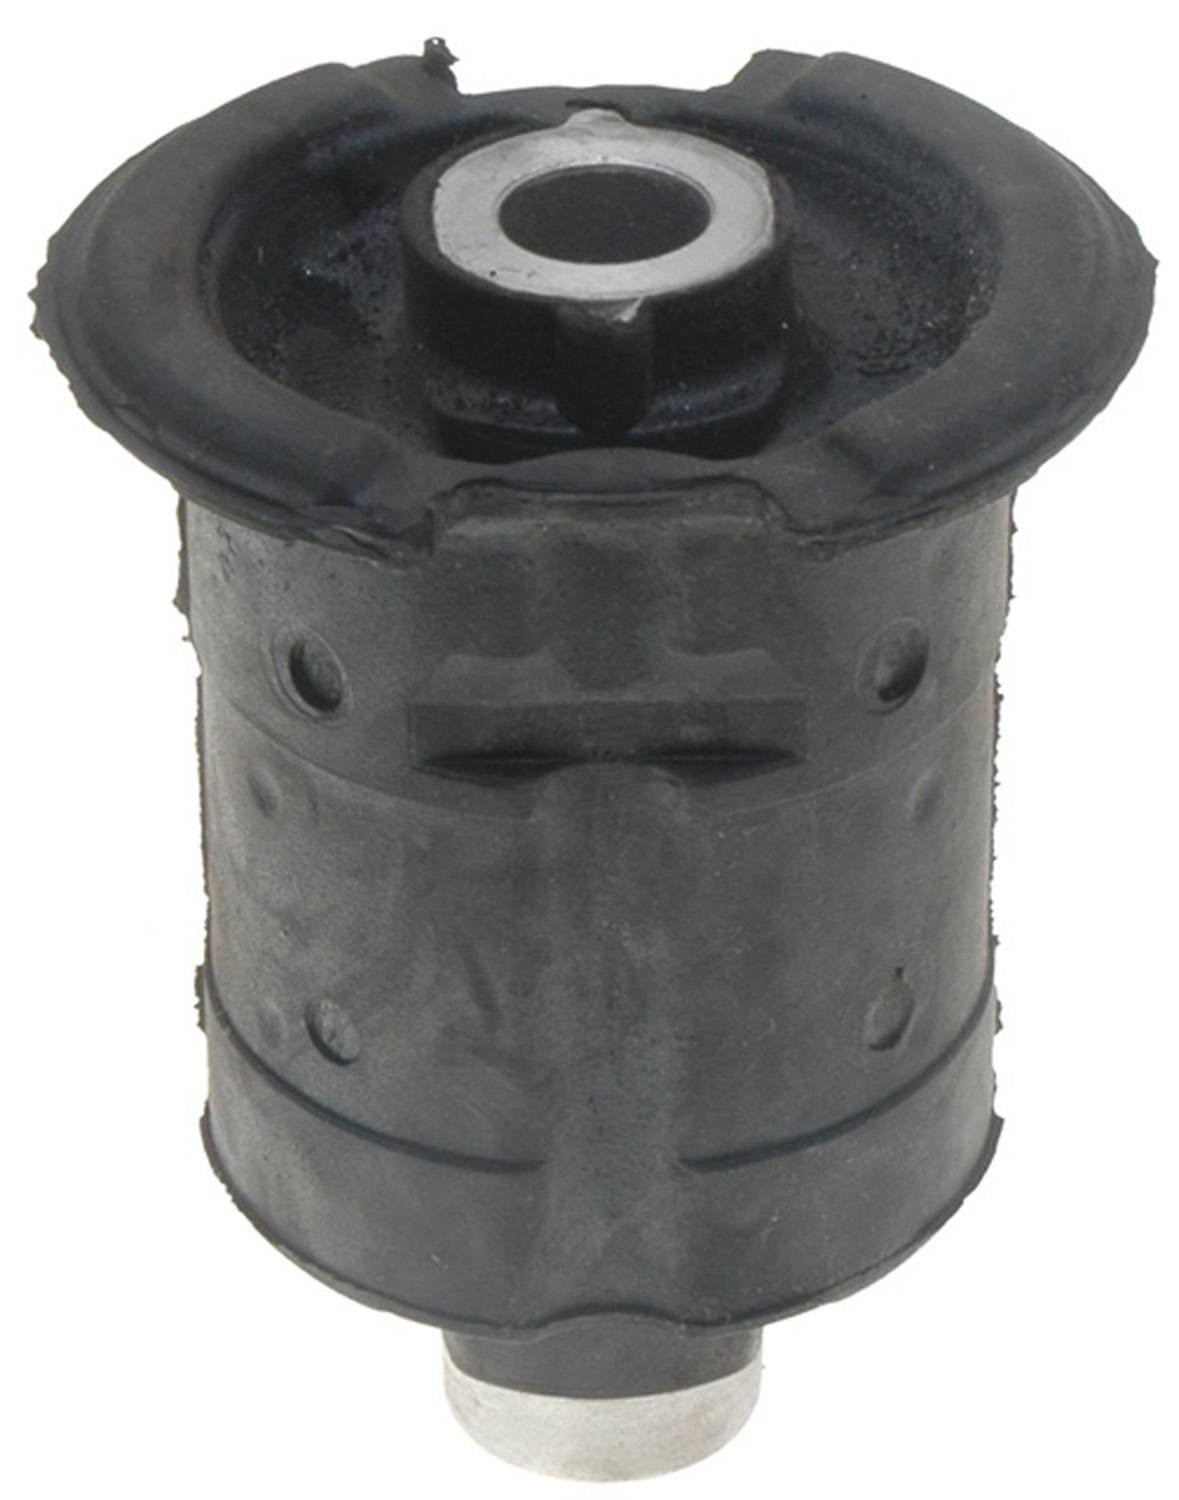 ACDELCO PROFESSIONAL CANADA - Axle Support Bushing - DCH 45G11062